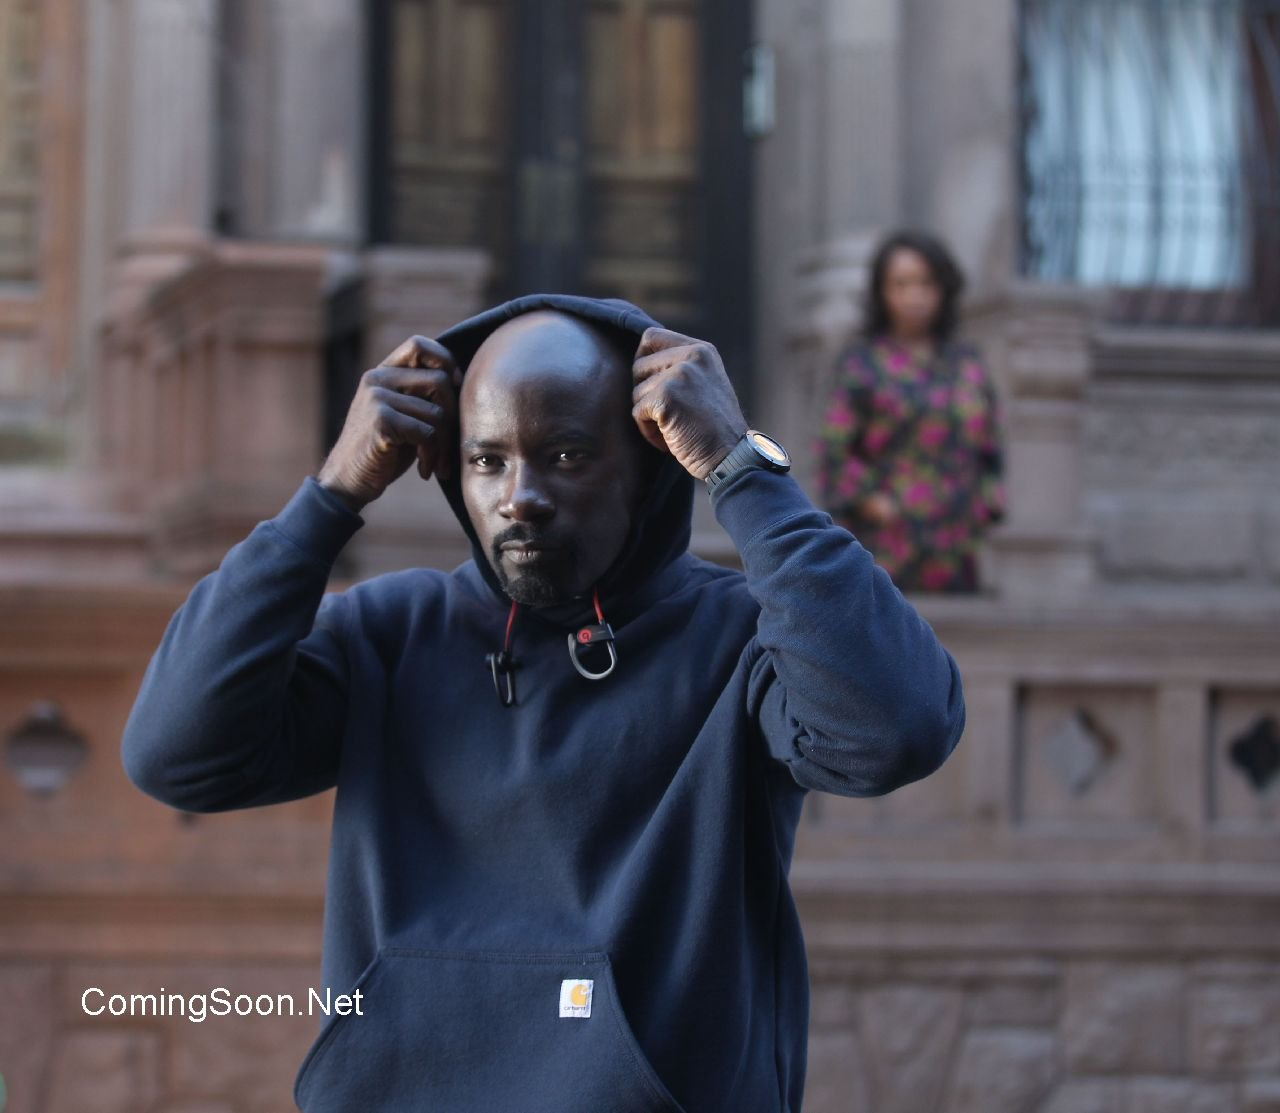 Luke Cage Meets Claire Temple In Fresh Batch Of Set Photos For Upcoming Marvel Series